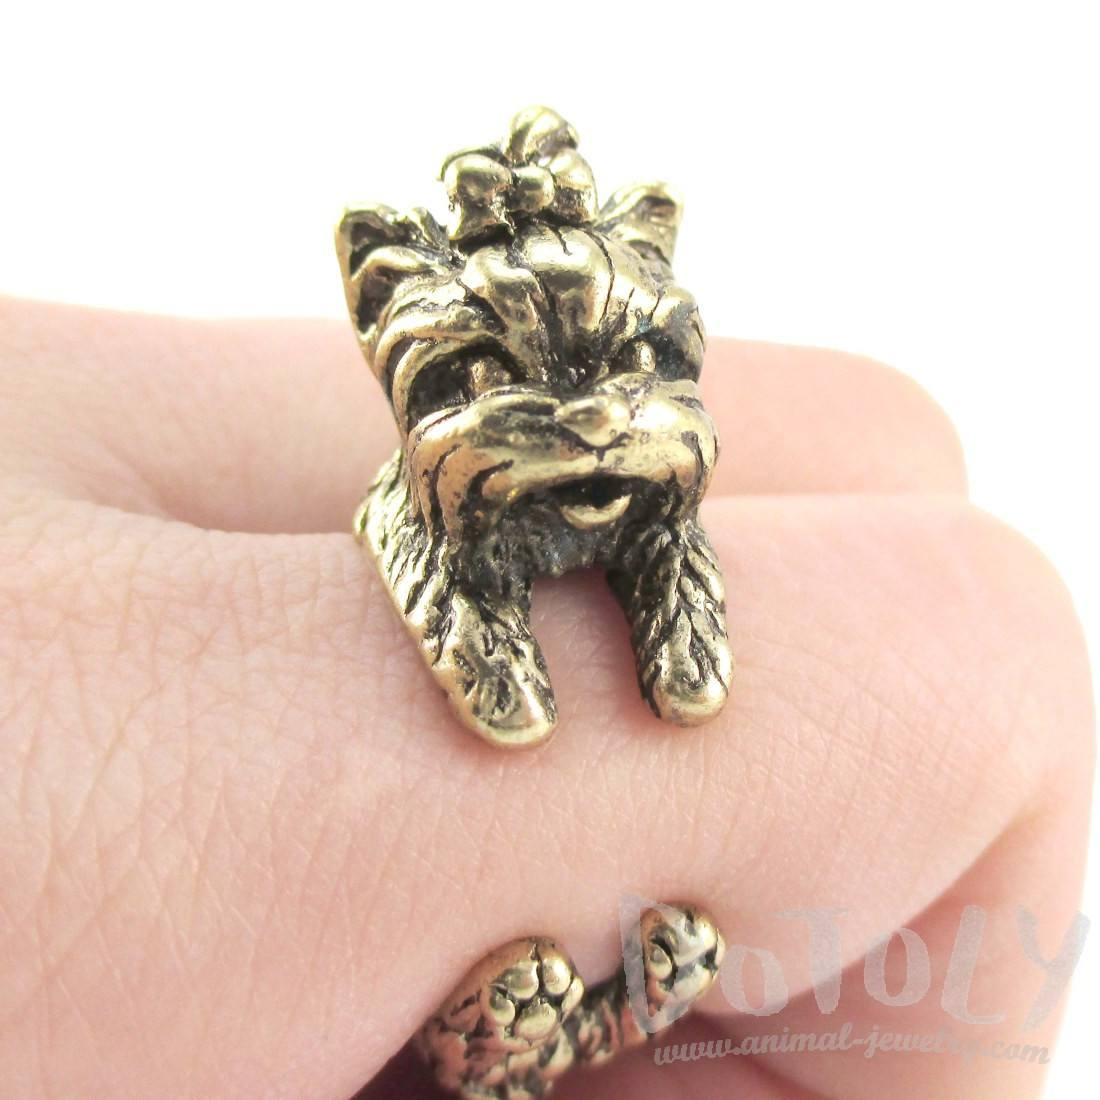 Yorkshire Terrier Dog Shaped Animal Wrap Ring in Brass